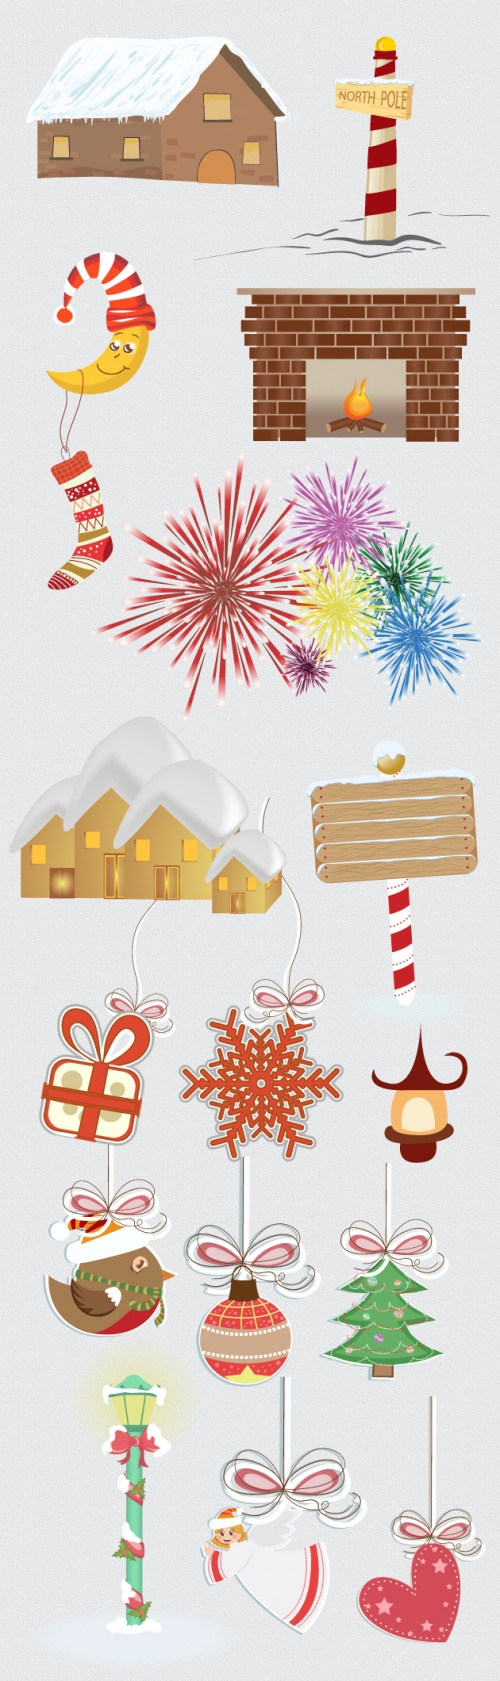 Designtnt - Christmas Vector Ornaments Set 2